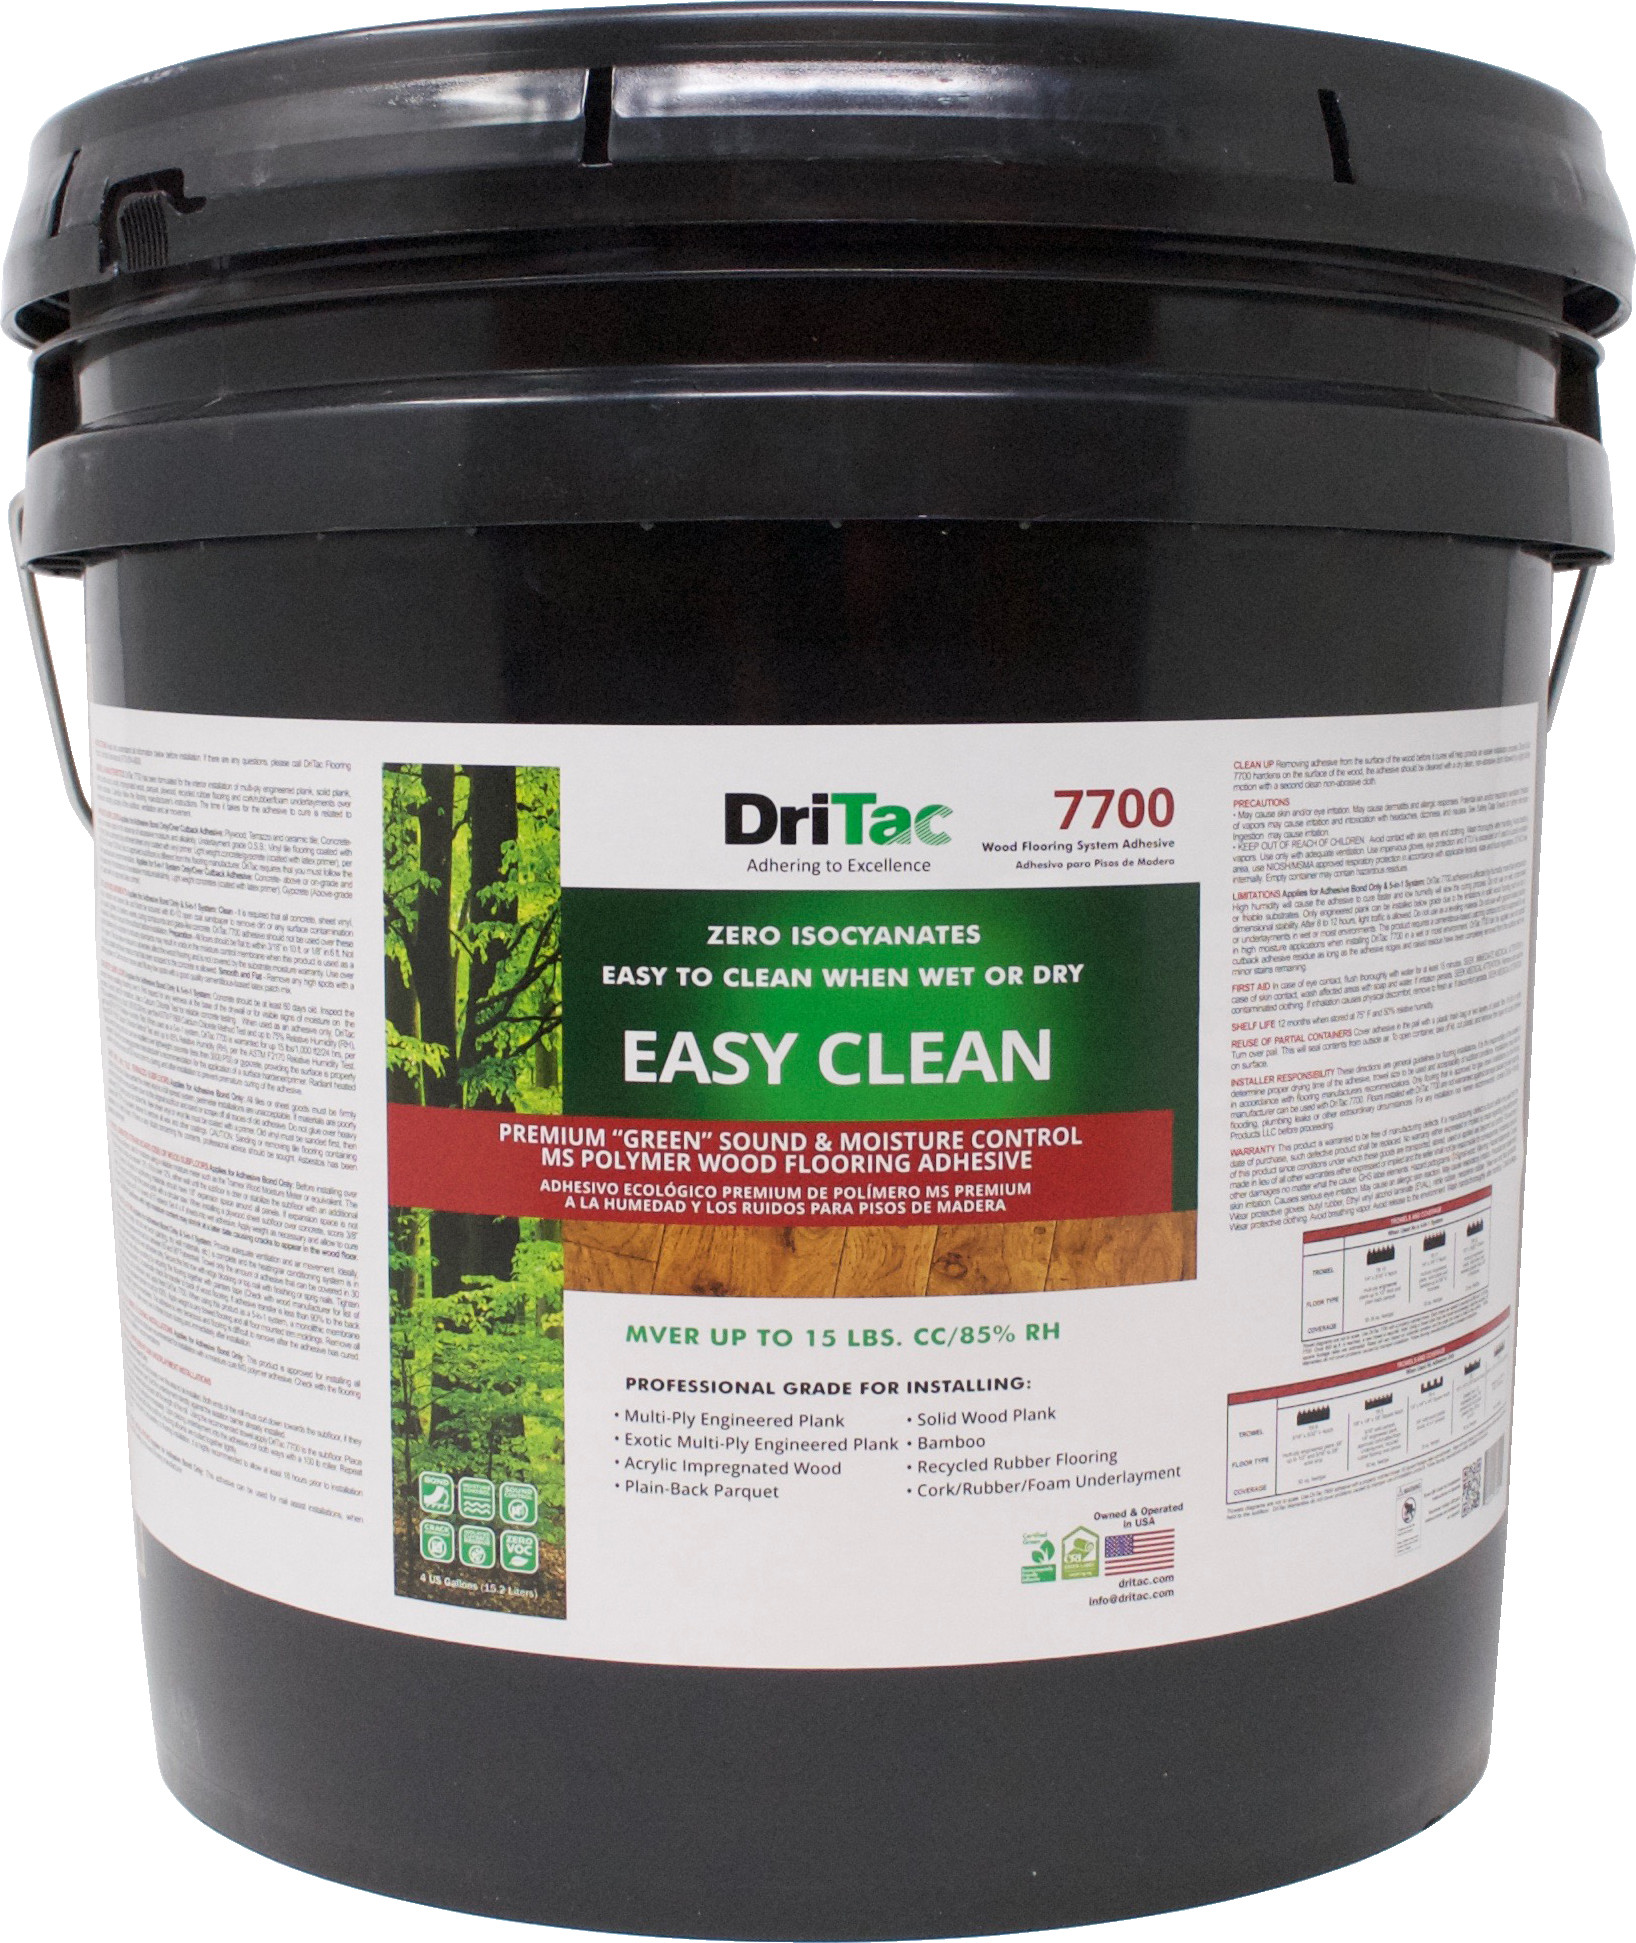 hardwood floor care products of dritac easy clean sound moisture control ms polymer floor adhesive pertaining to dritac 7700 easy clean